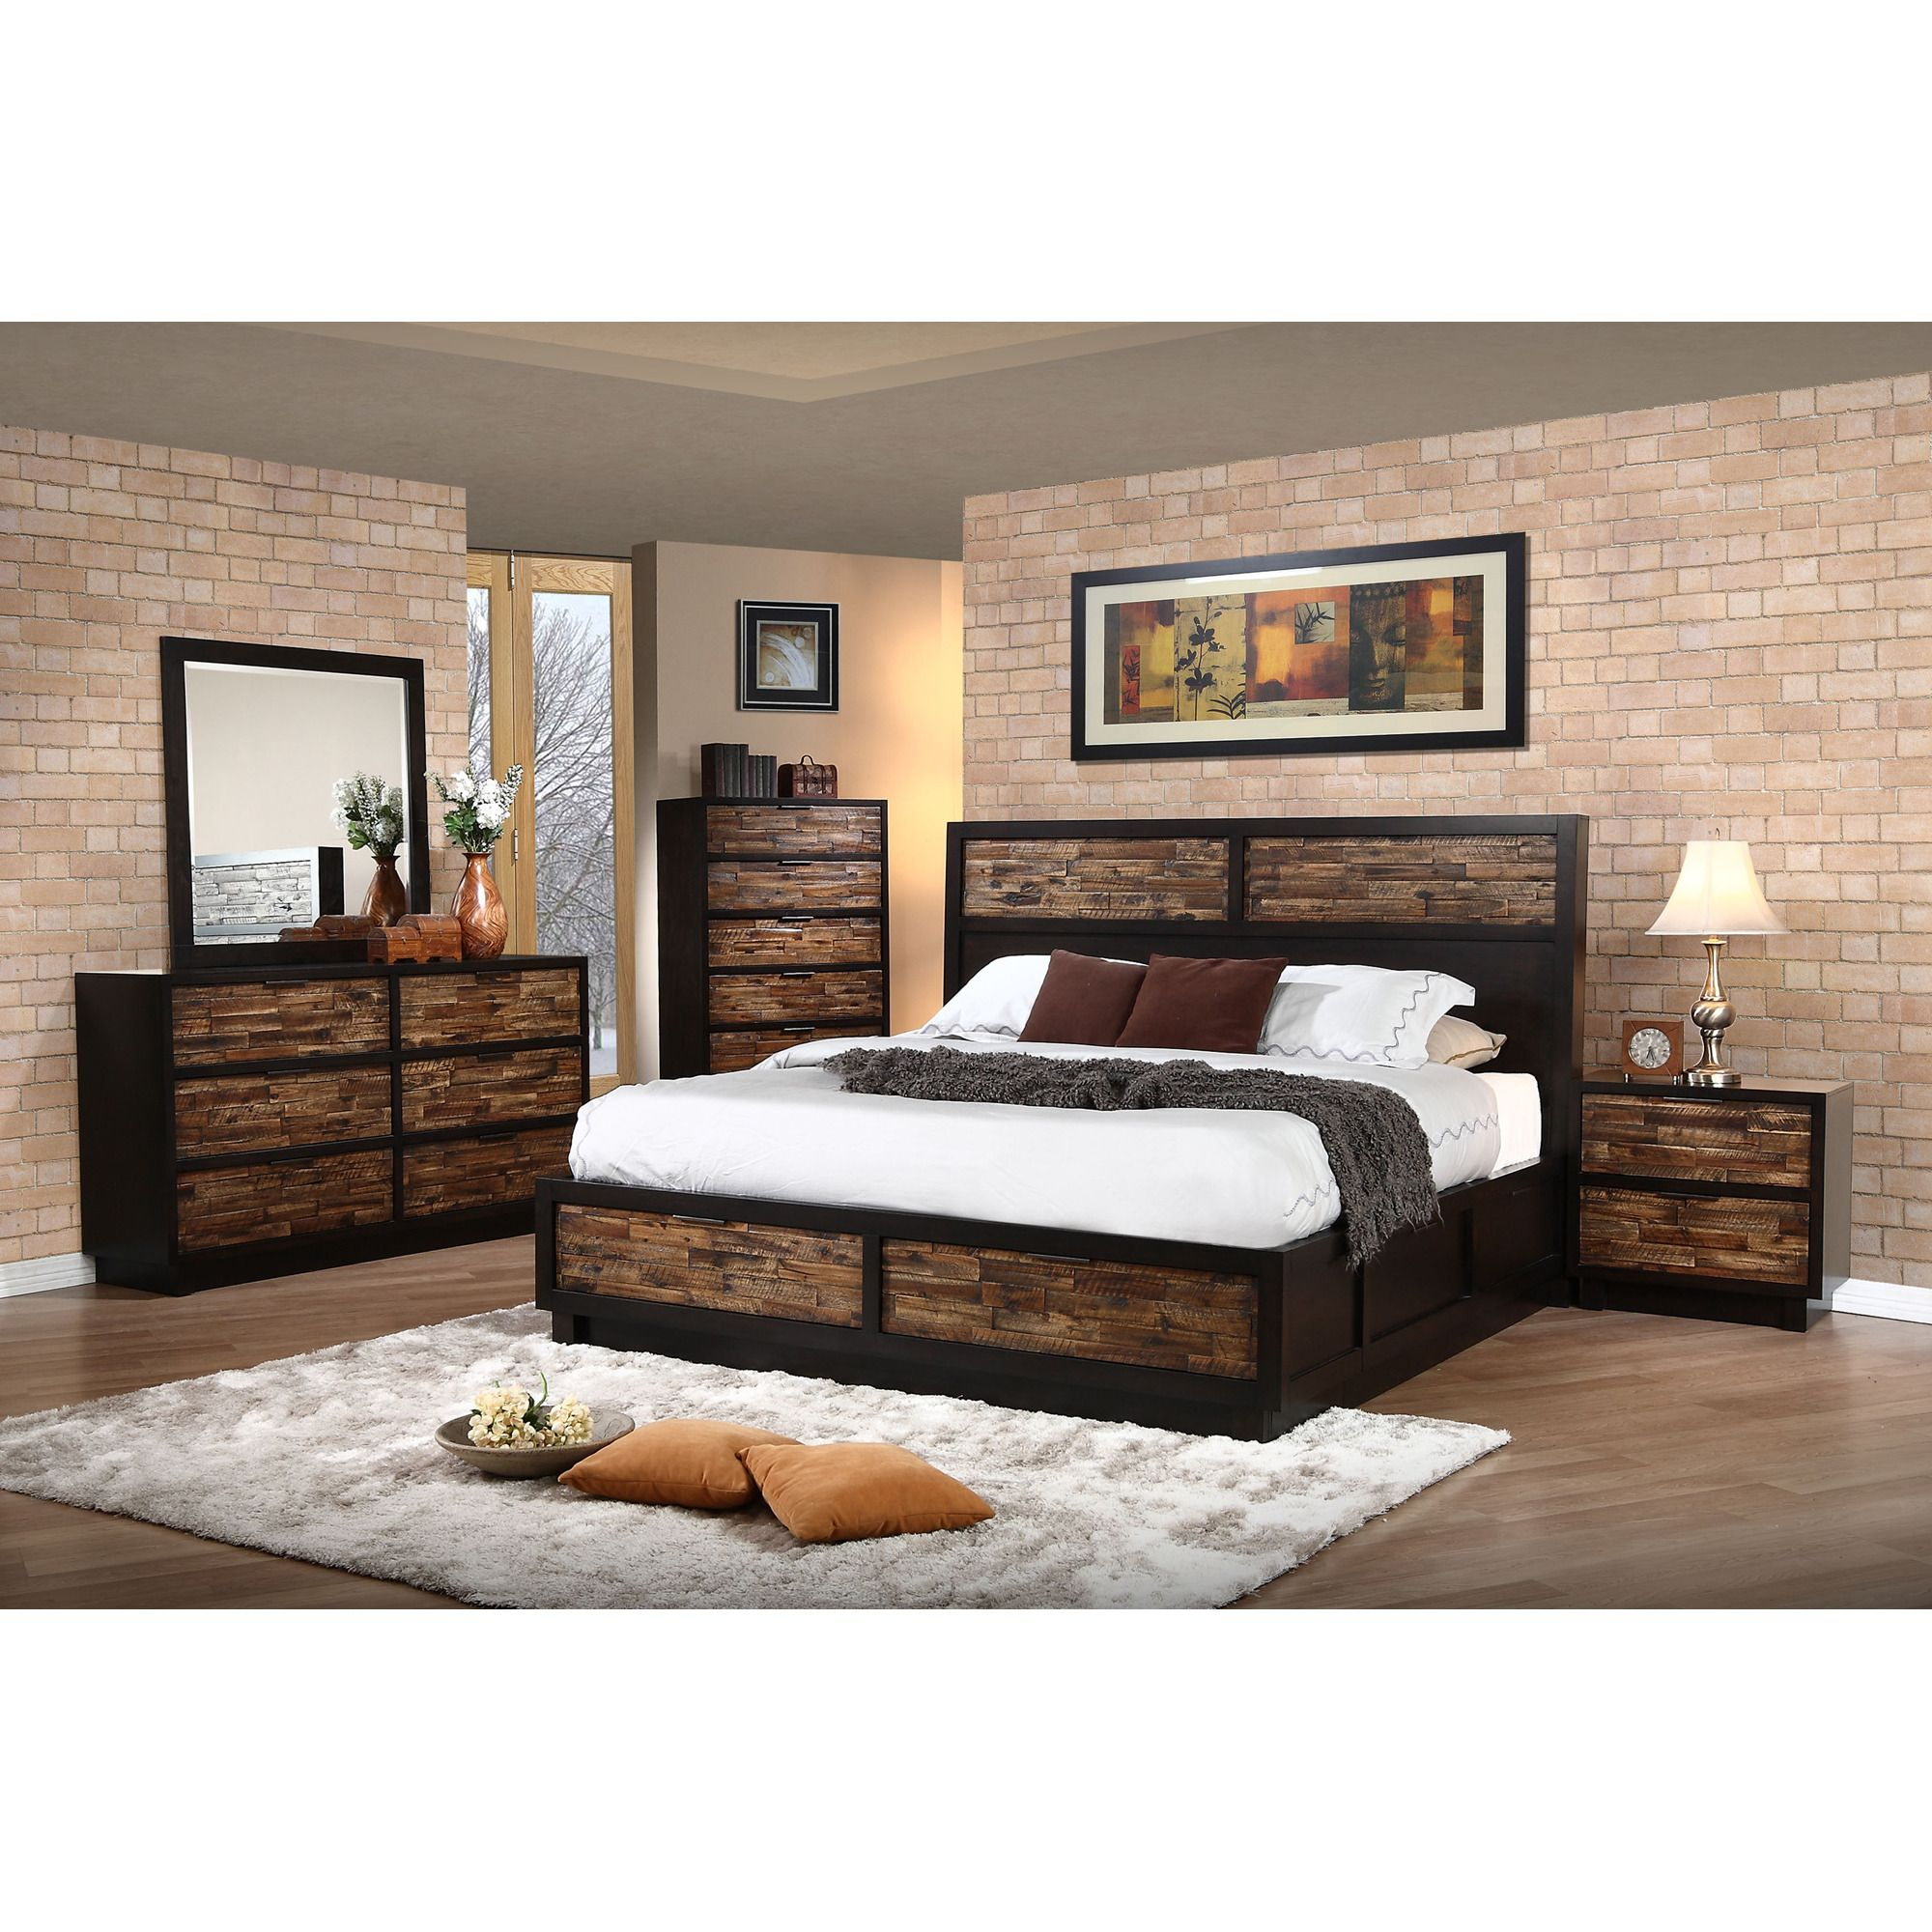 Makeeda Queen Storage Bed In Brown By New Classic Home Gallery Stores New Classic Furniture Bed Nebraska Furniture Mart